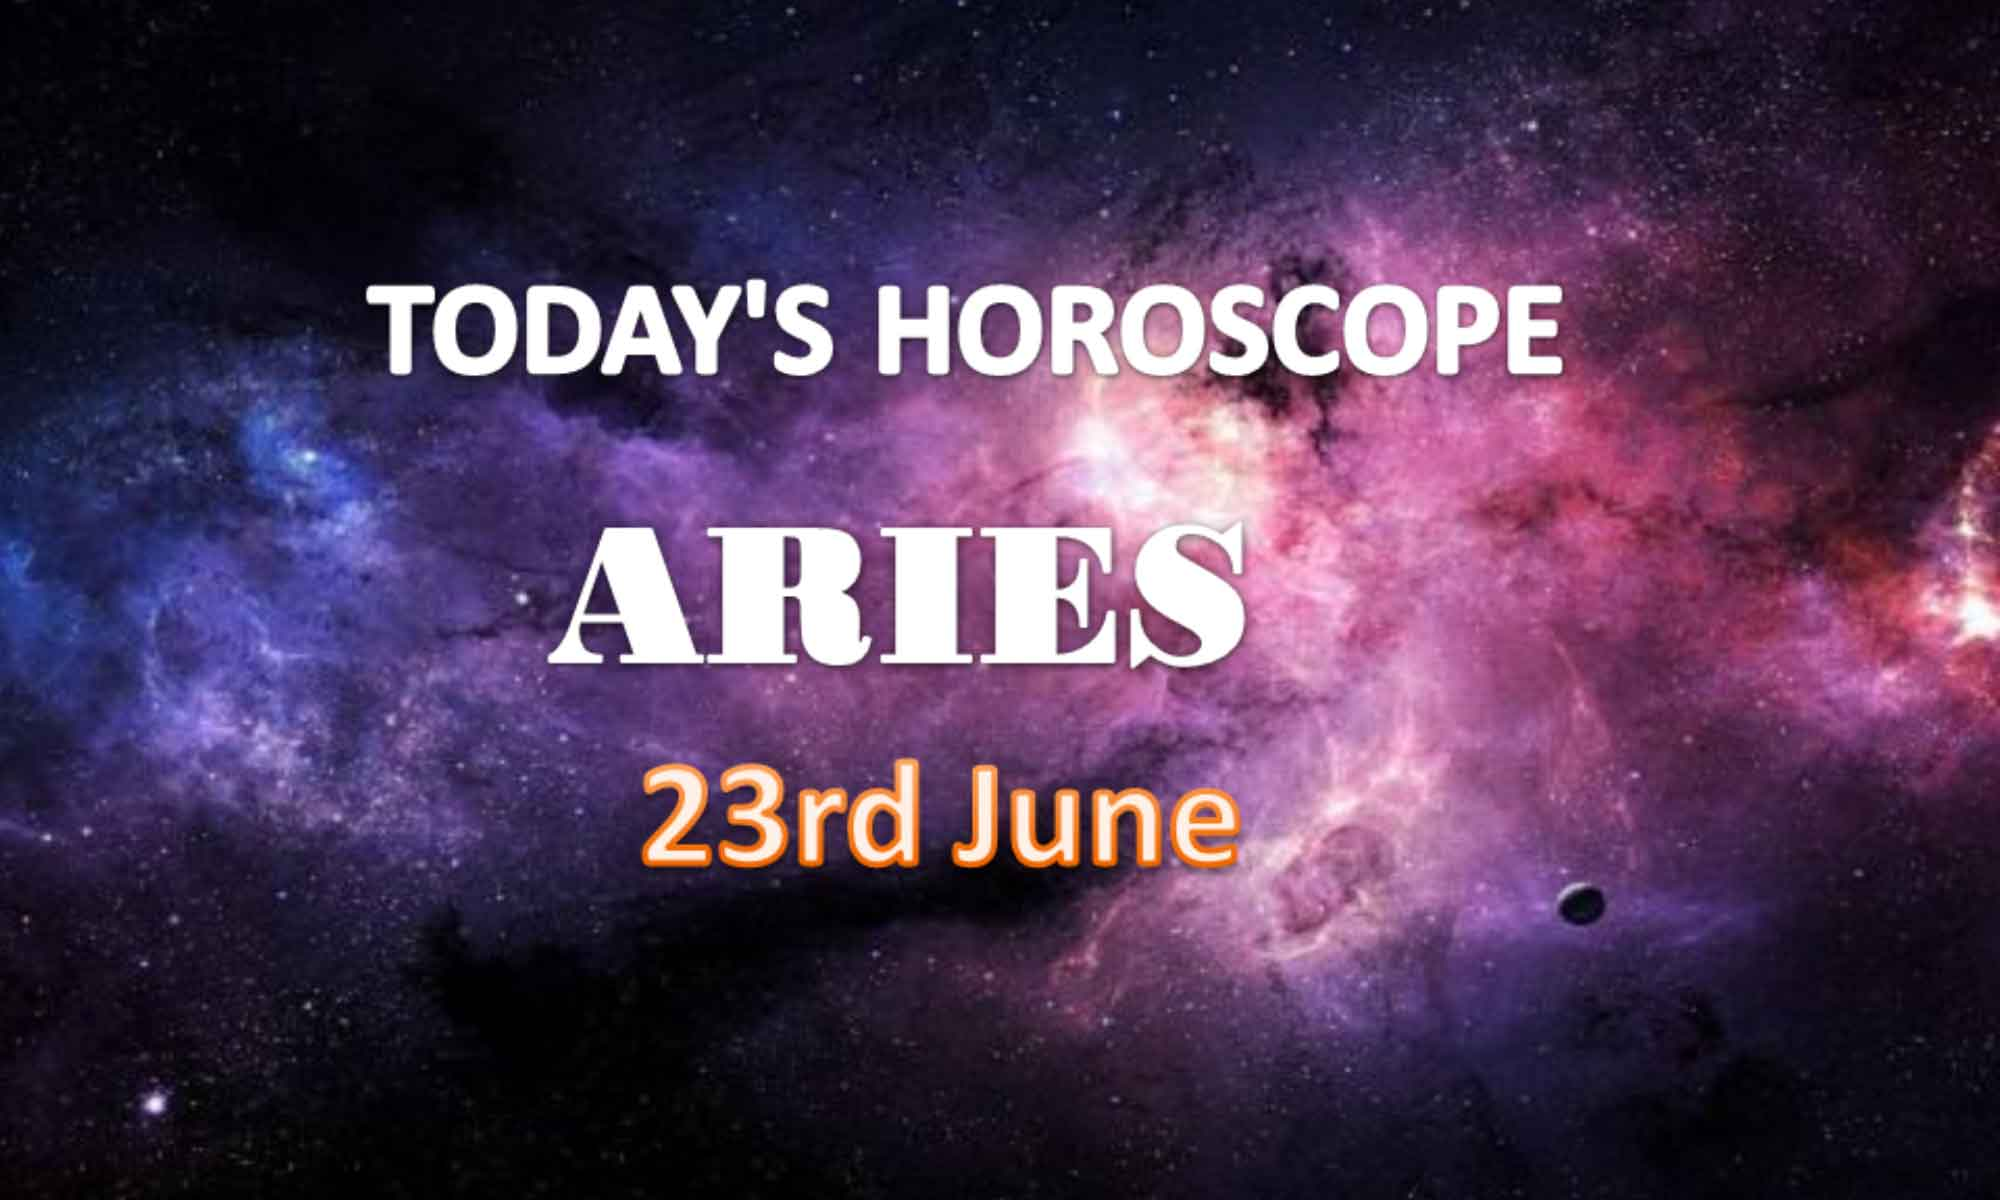 aries daily horoscope for today wednesday june 23rd 2021